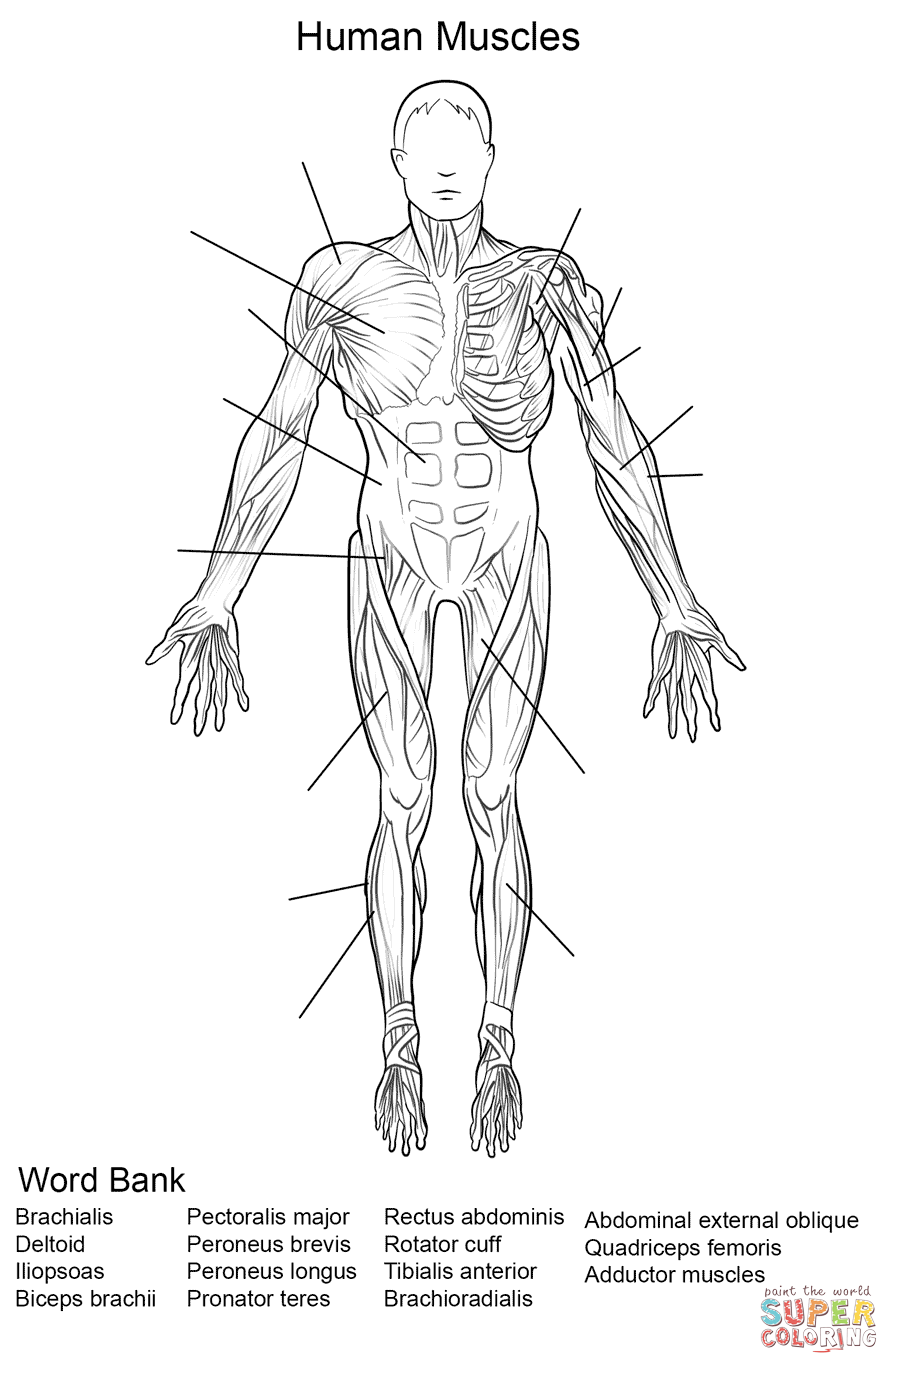 Muscles Human Body Coloring Pages